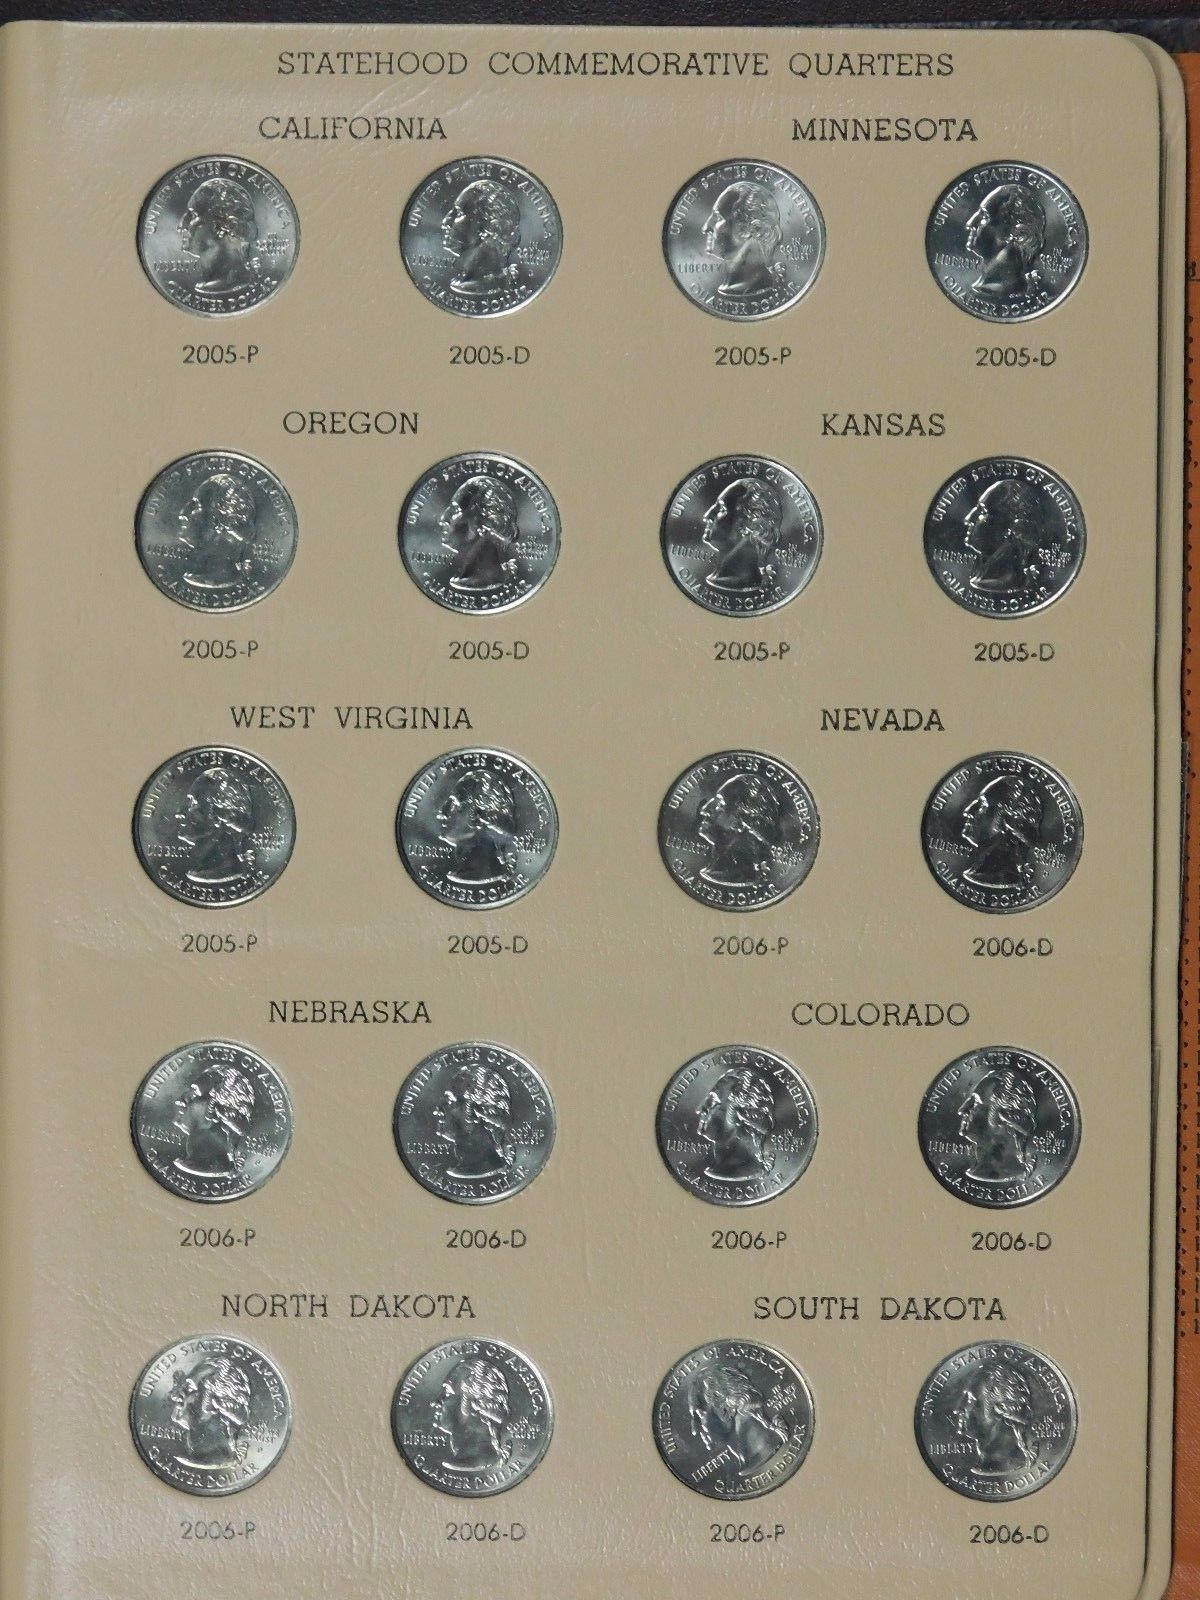 Statehood Quarters Commemorative